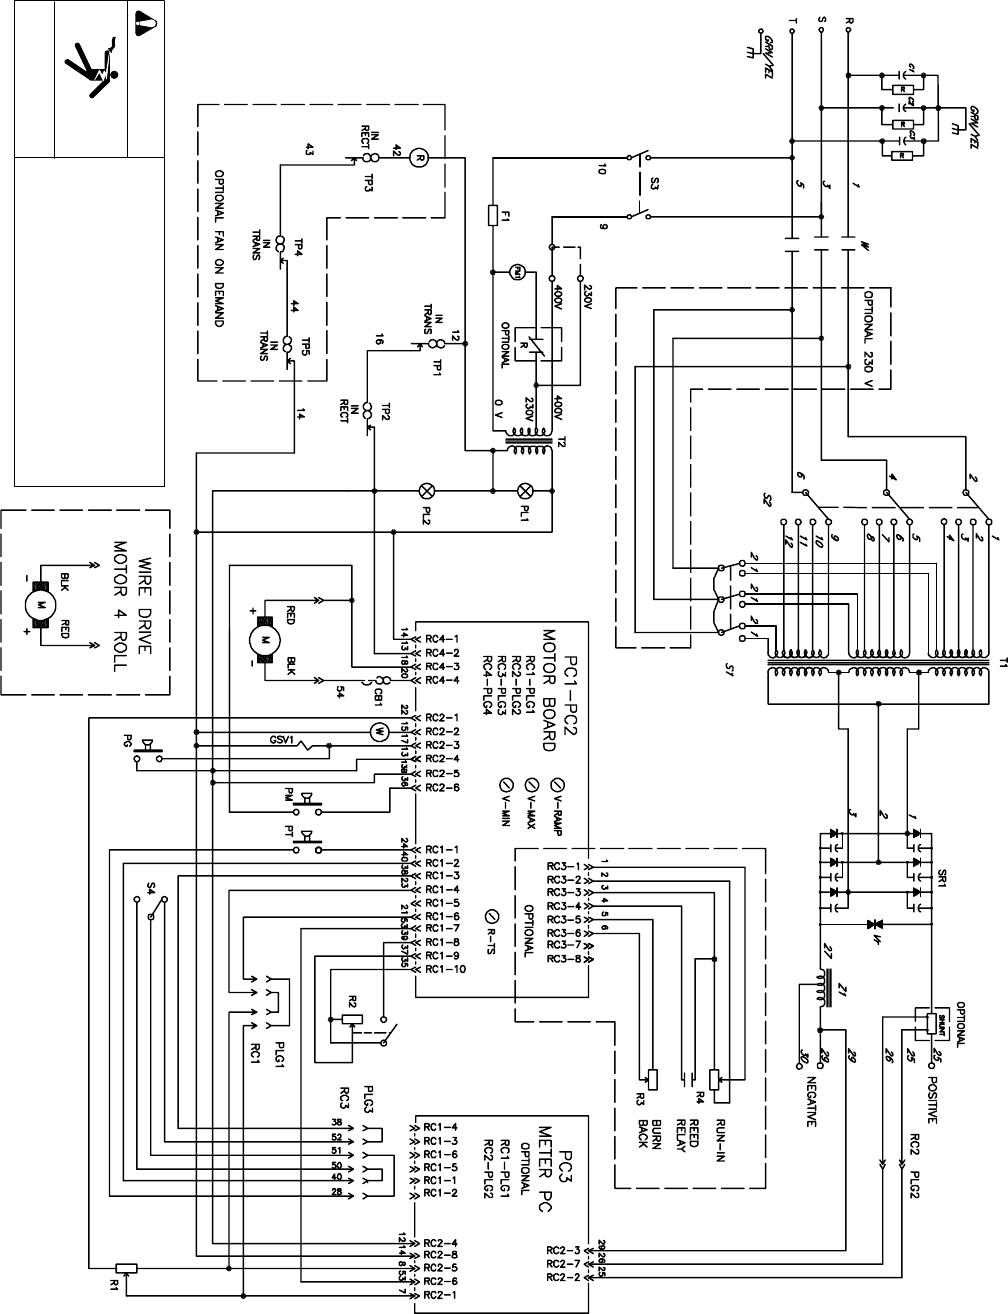 Electrical Diagram Fuel Gauge as well Miller Bobcat Fuel Gauge Wiring Diagram furthermore Document in addition Autometer Watertemp Install as well Fuel Gauge Wiring Diagram. on universal gas gauge sending unit